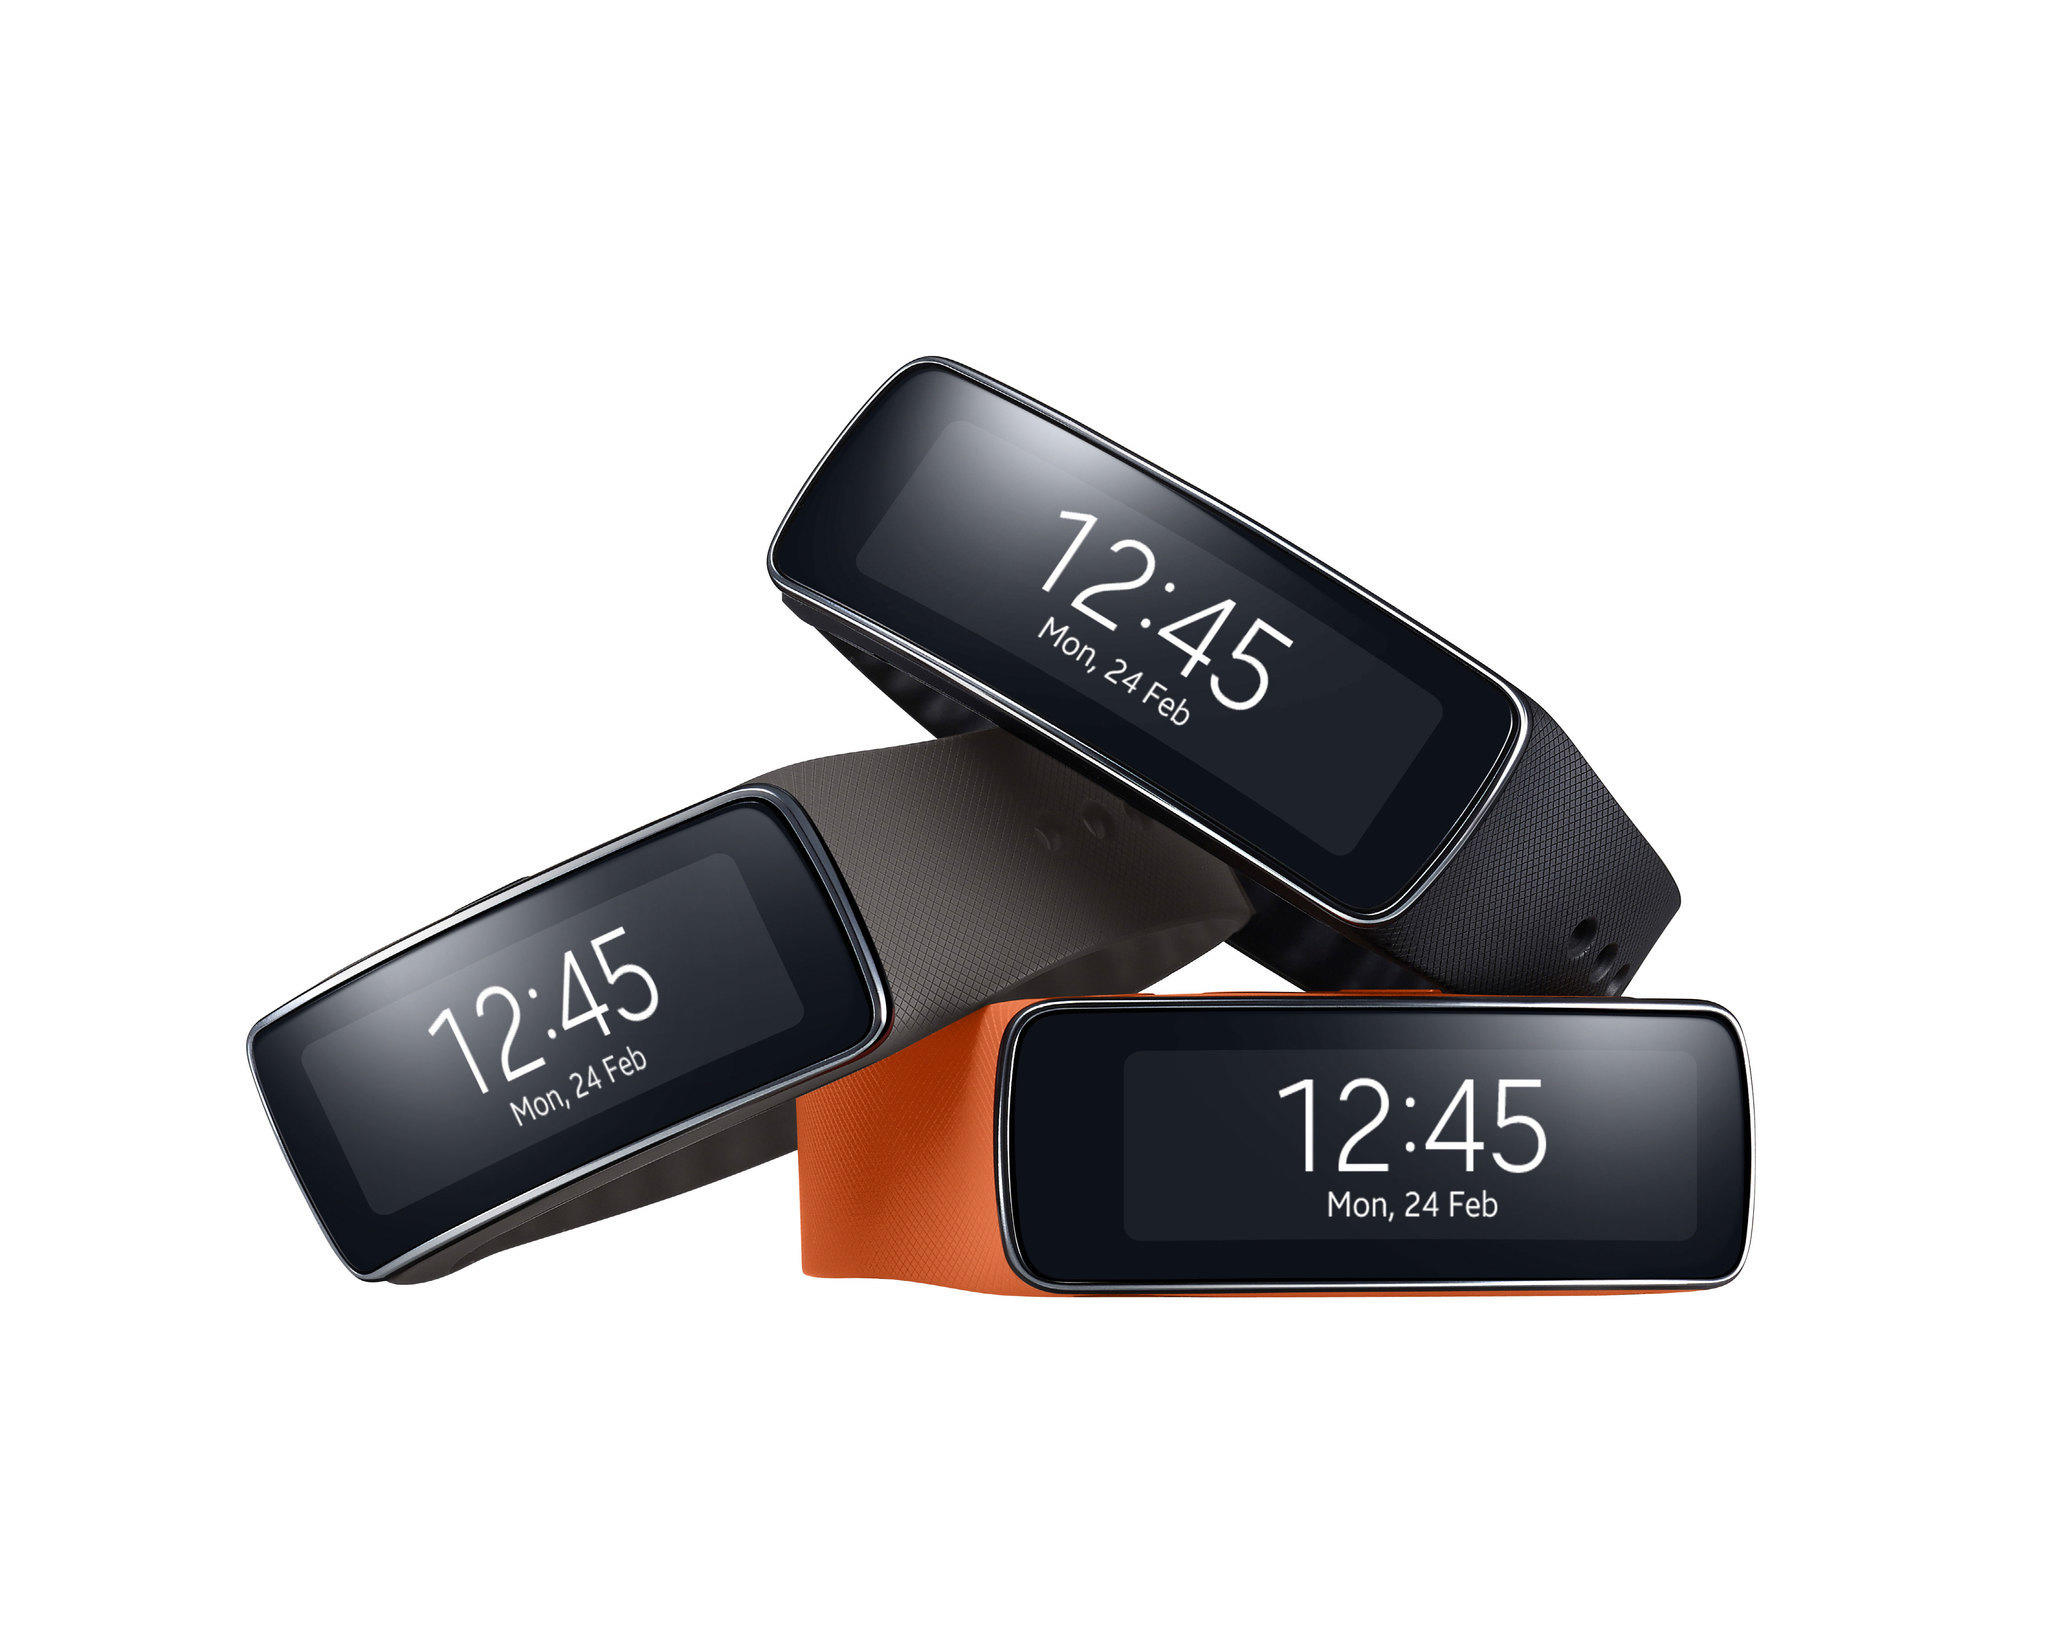 The Samsung Gear Fit is a fitness tracking band that will go on sale in April.